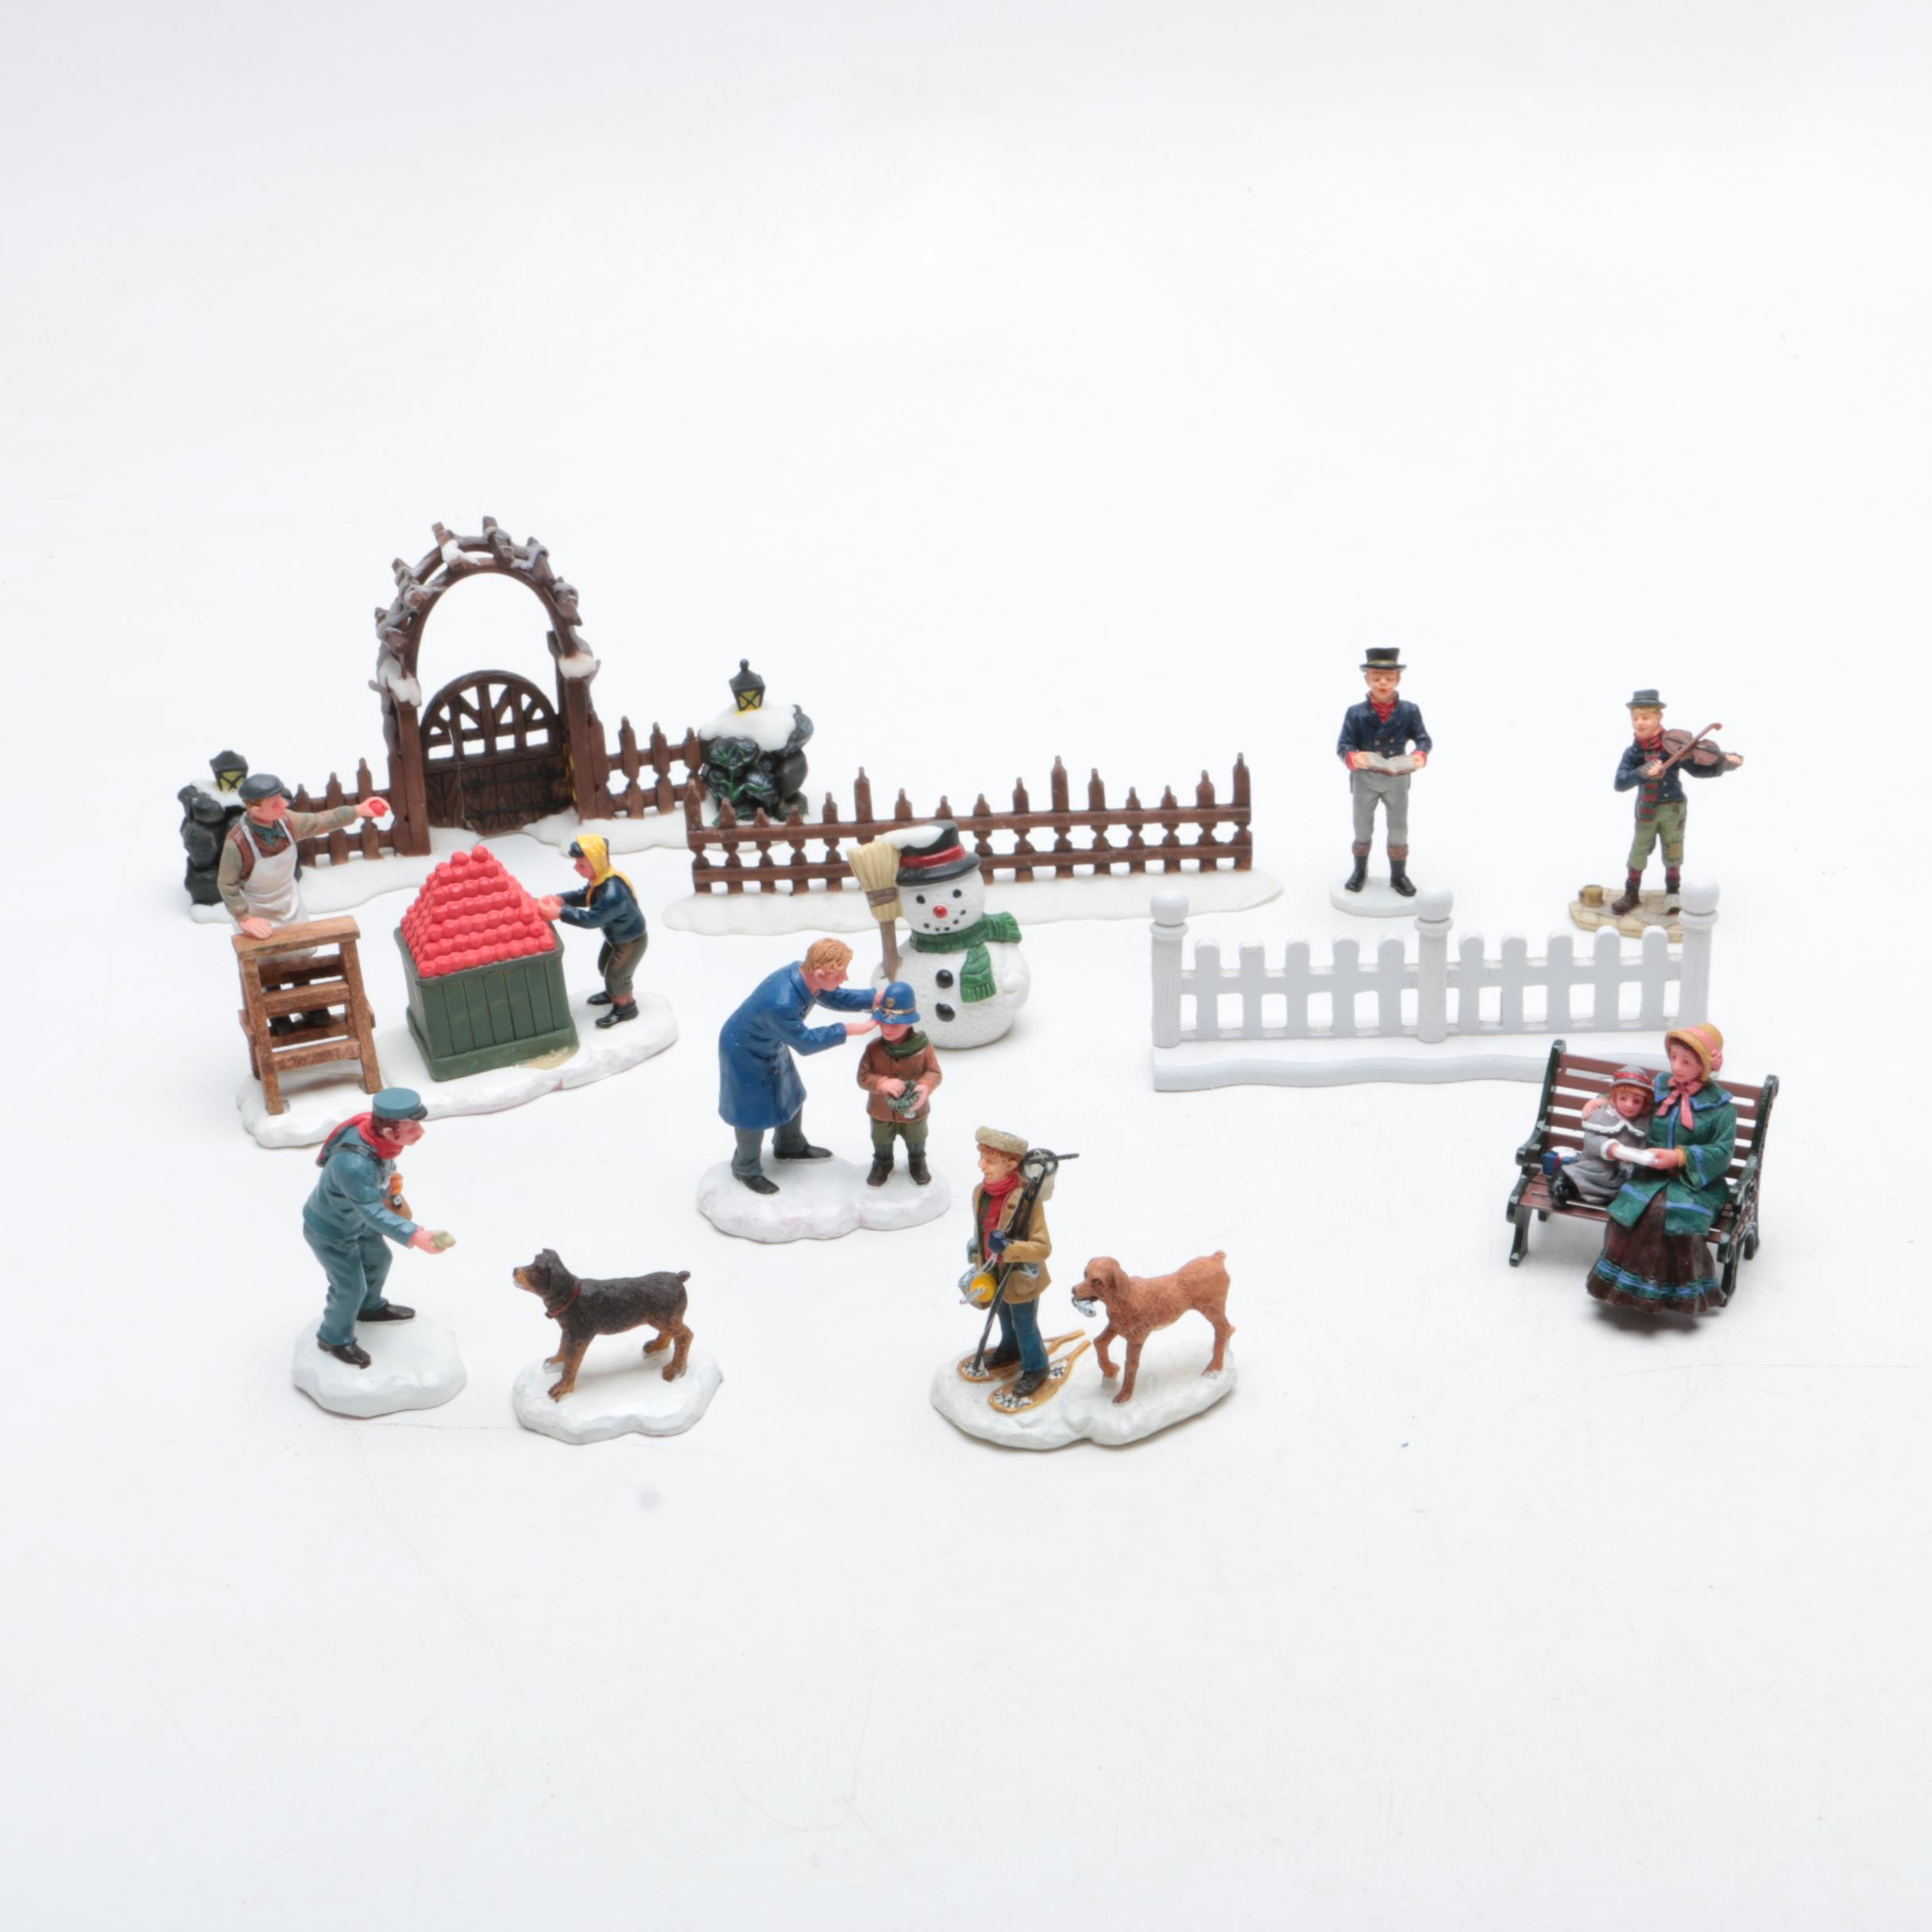 Lemax and Other Miniature Winter-Themed Figurines